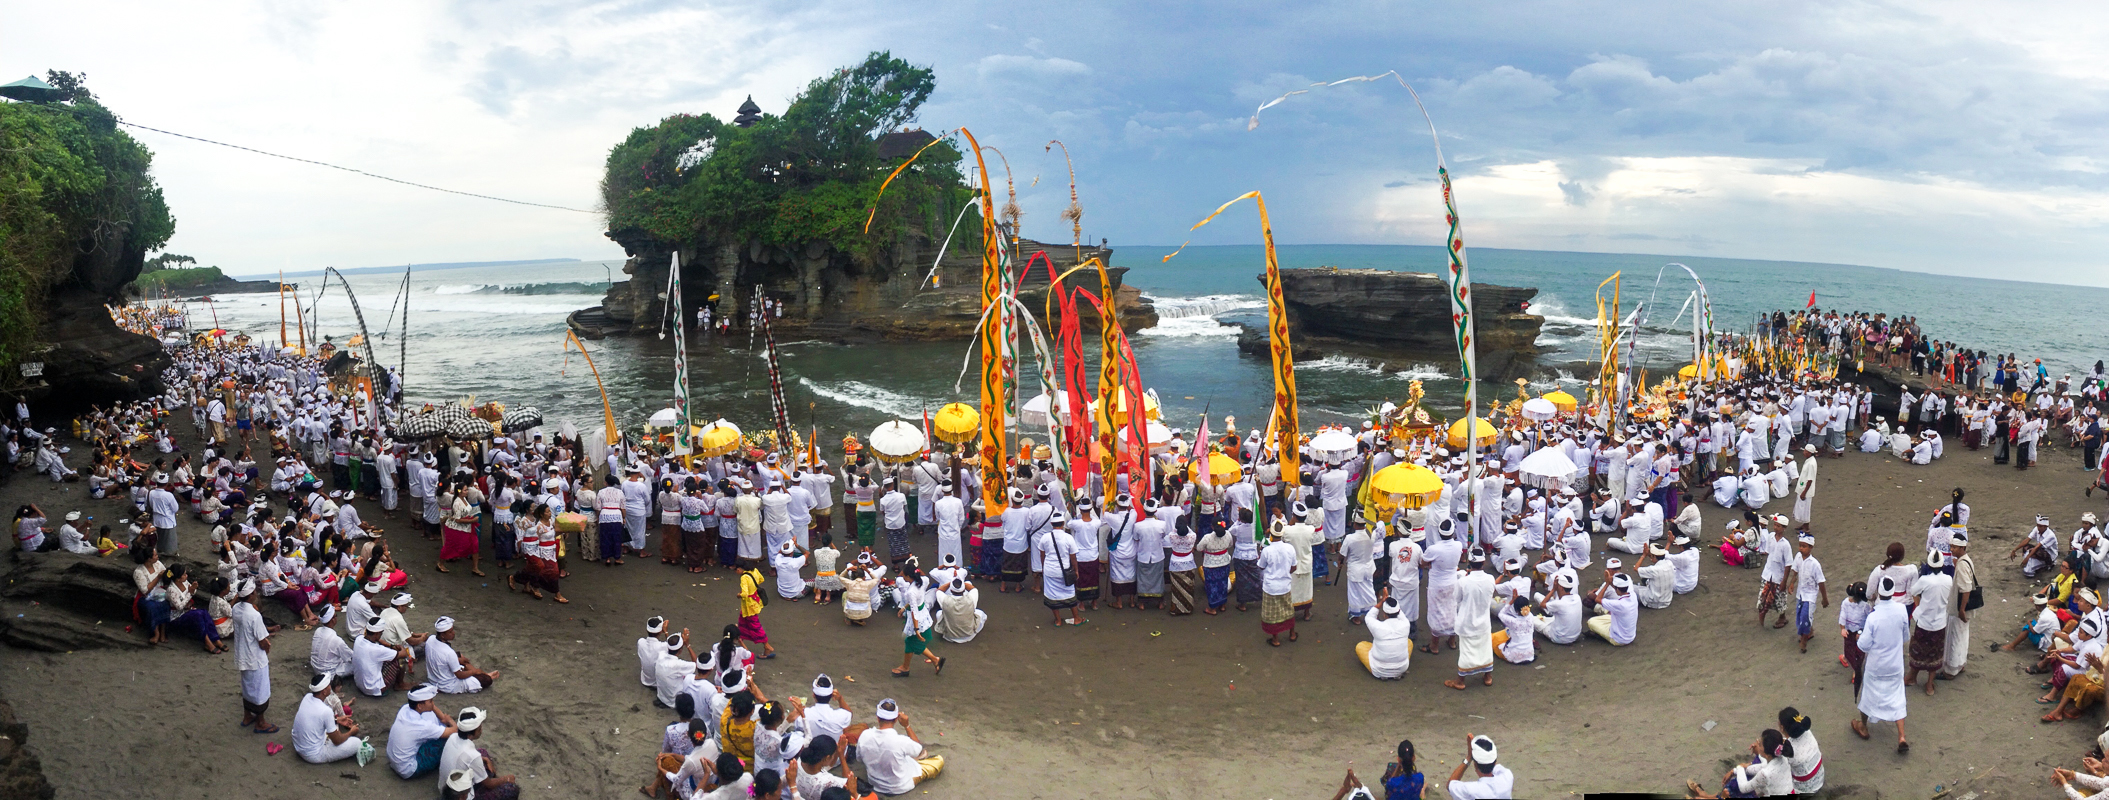 Nyepi Balinese New Year: The Melasti Ritual at Tanah Lot